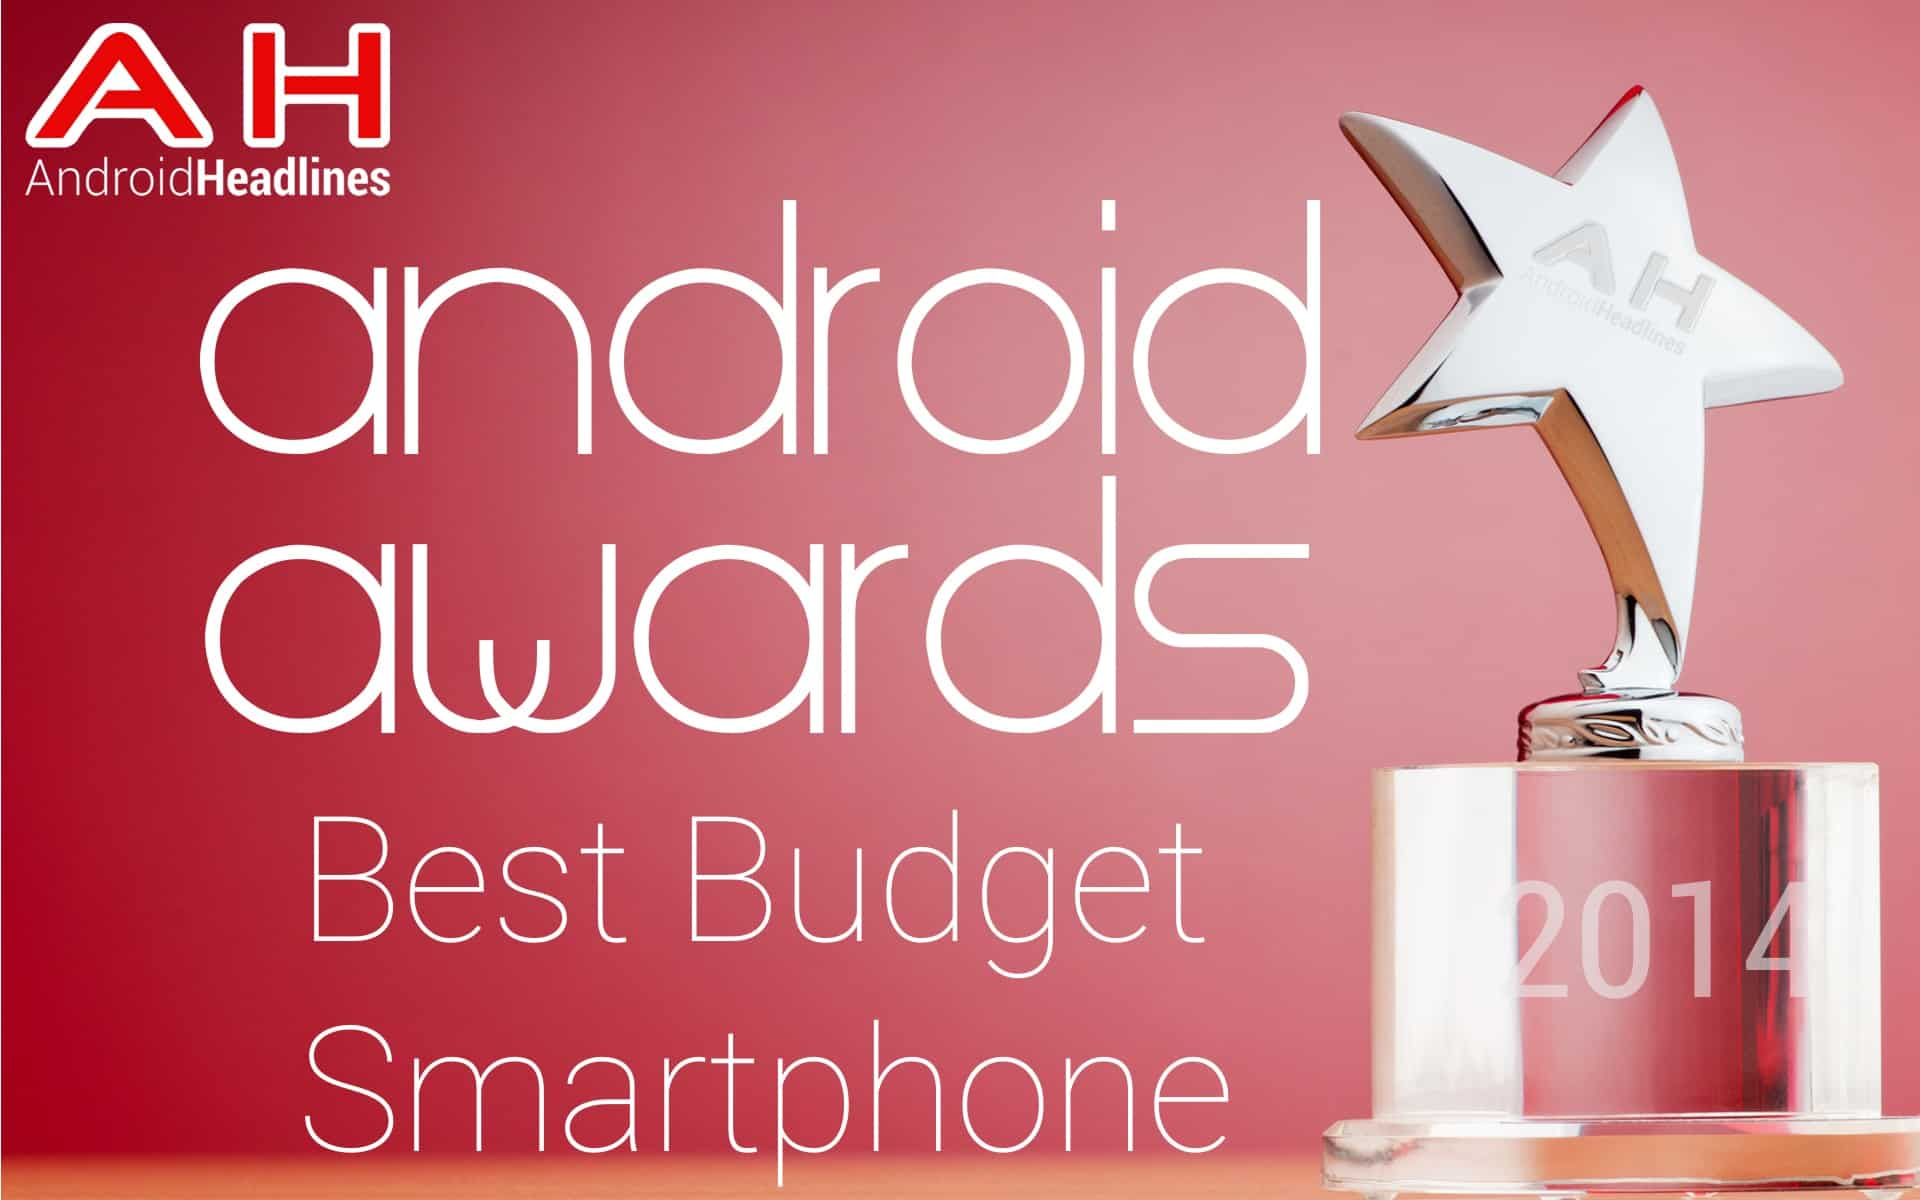 AH Awards 2014 Best Budget Android Smartphone of the year